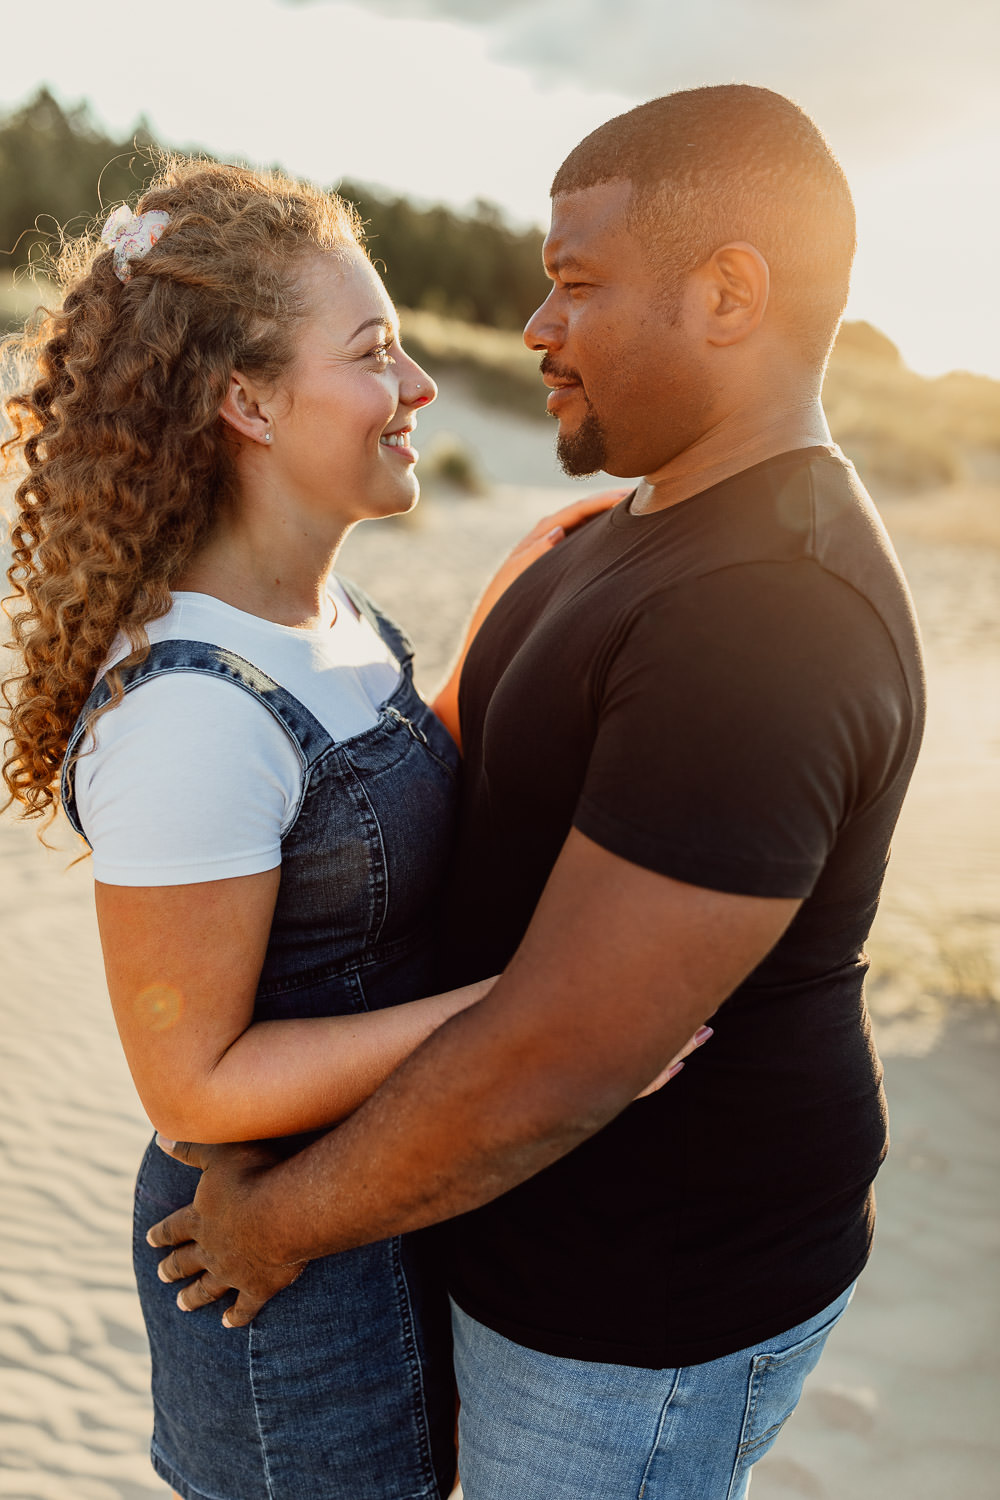 norfolk coast sunset engagement shoot